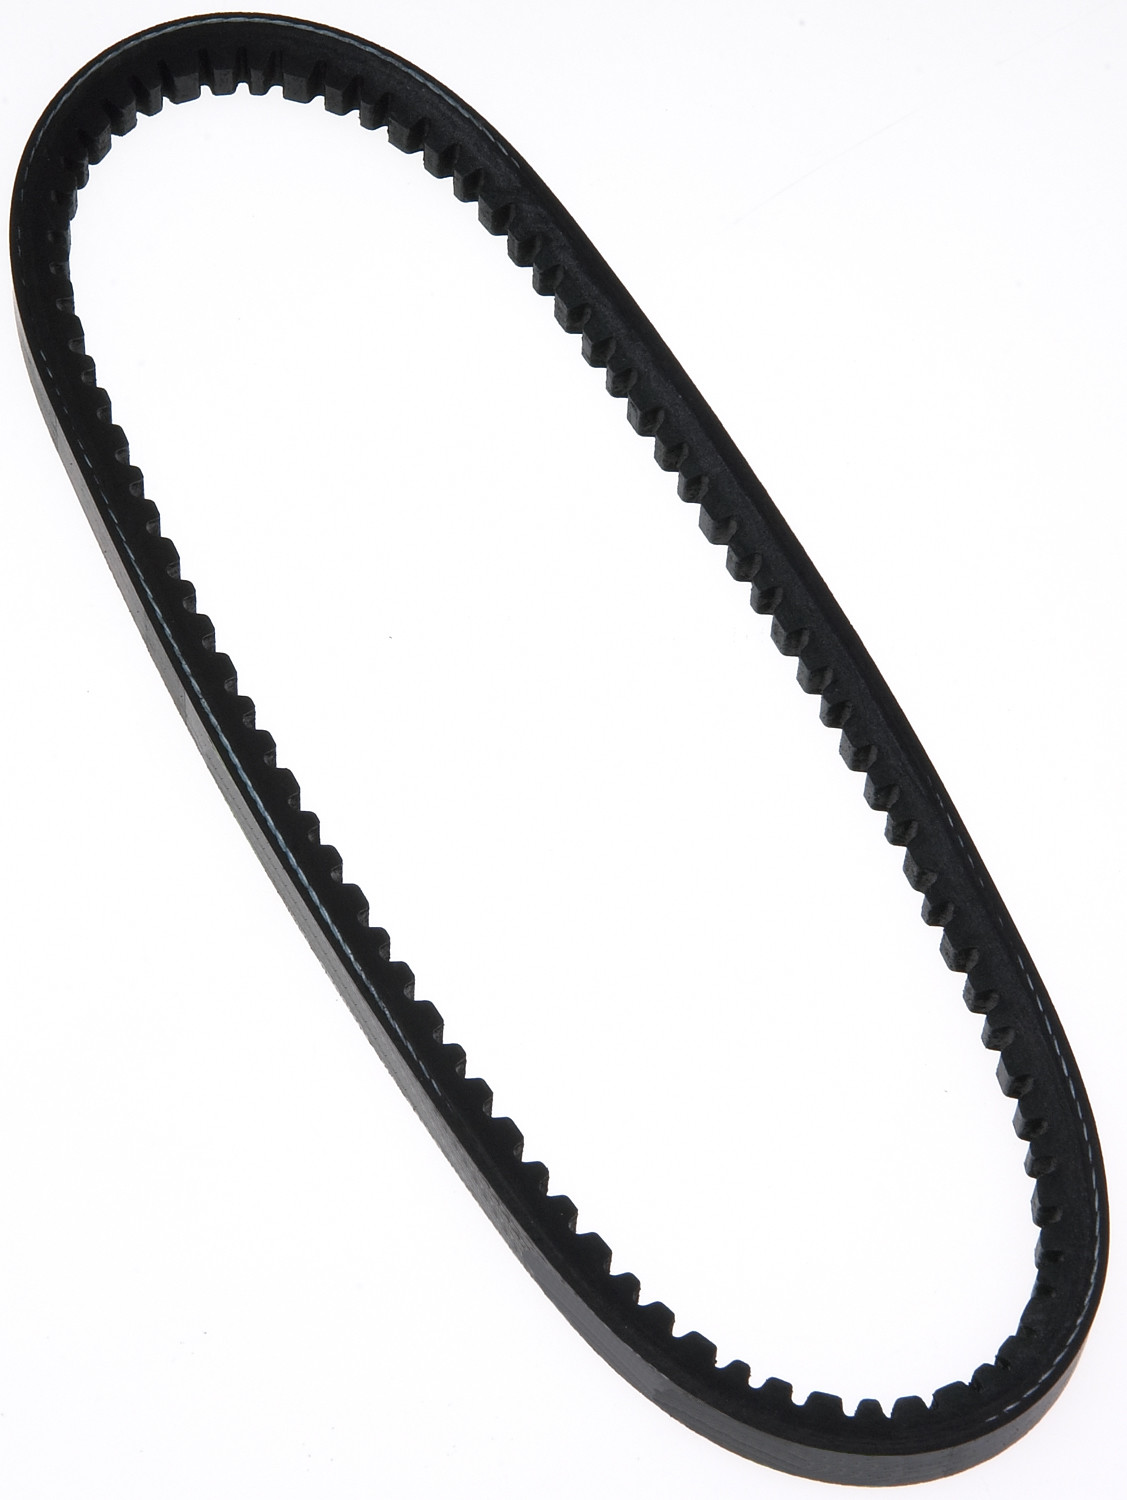 ROADMAX - High Capacity V-belt(standard) - RMX 17395AP